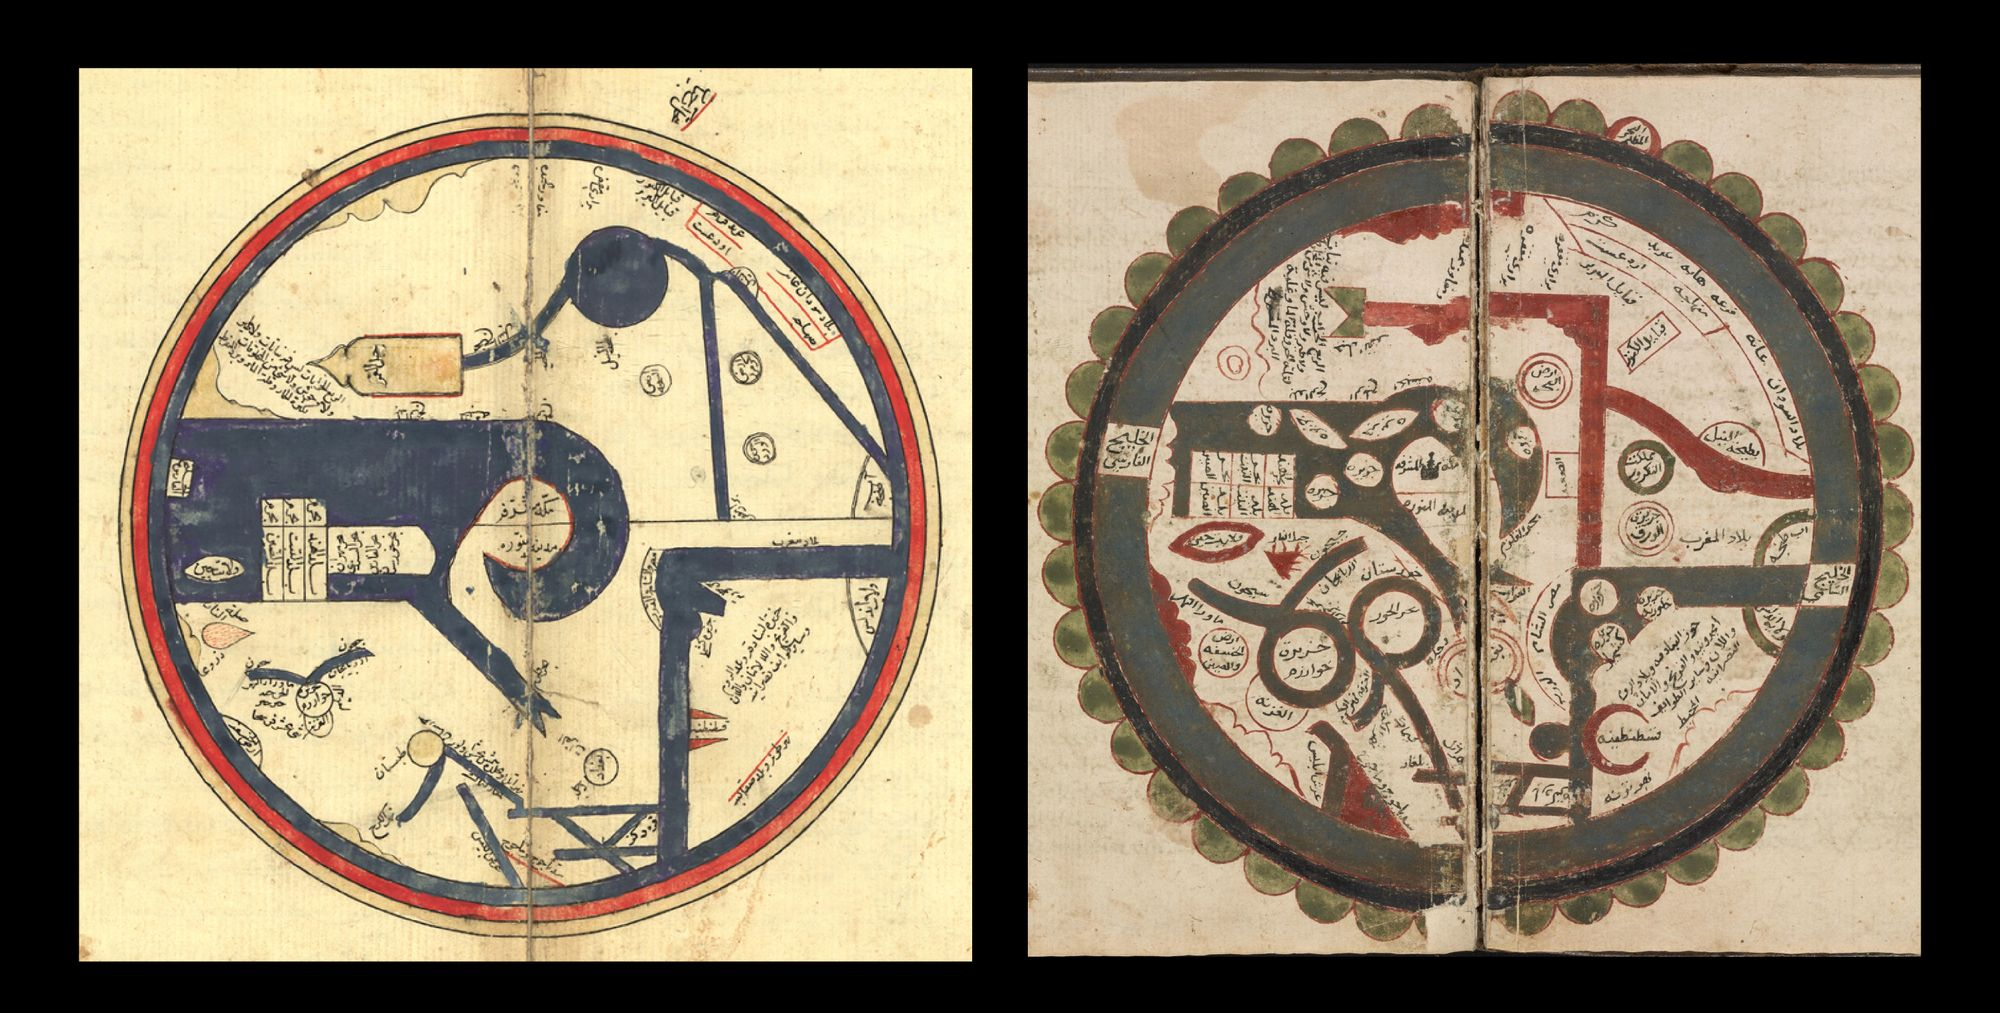 Two spreads from the old manuscript, showing round maps. The illustrations are quite abstract and minimalistic, depicting geographical features in geometrical forms.